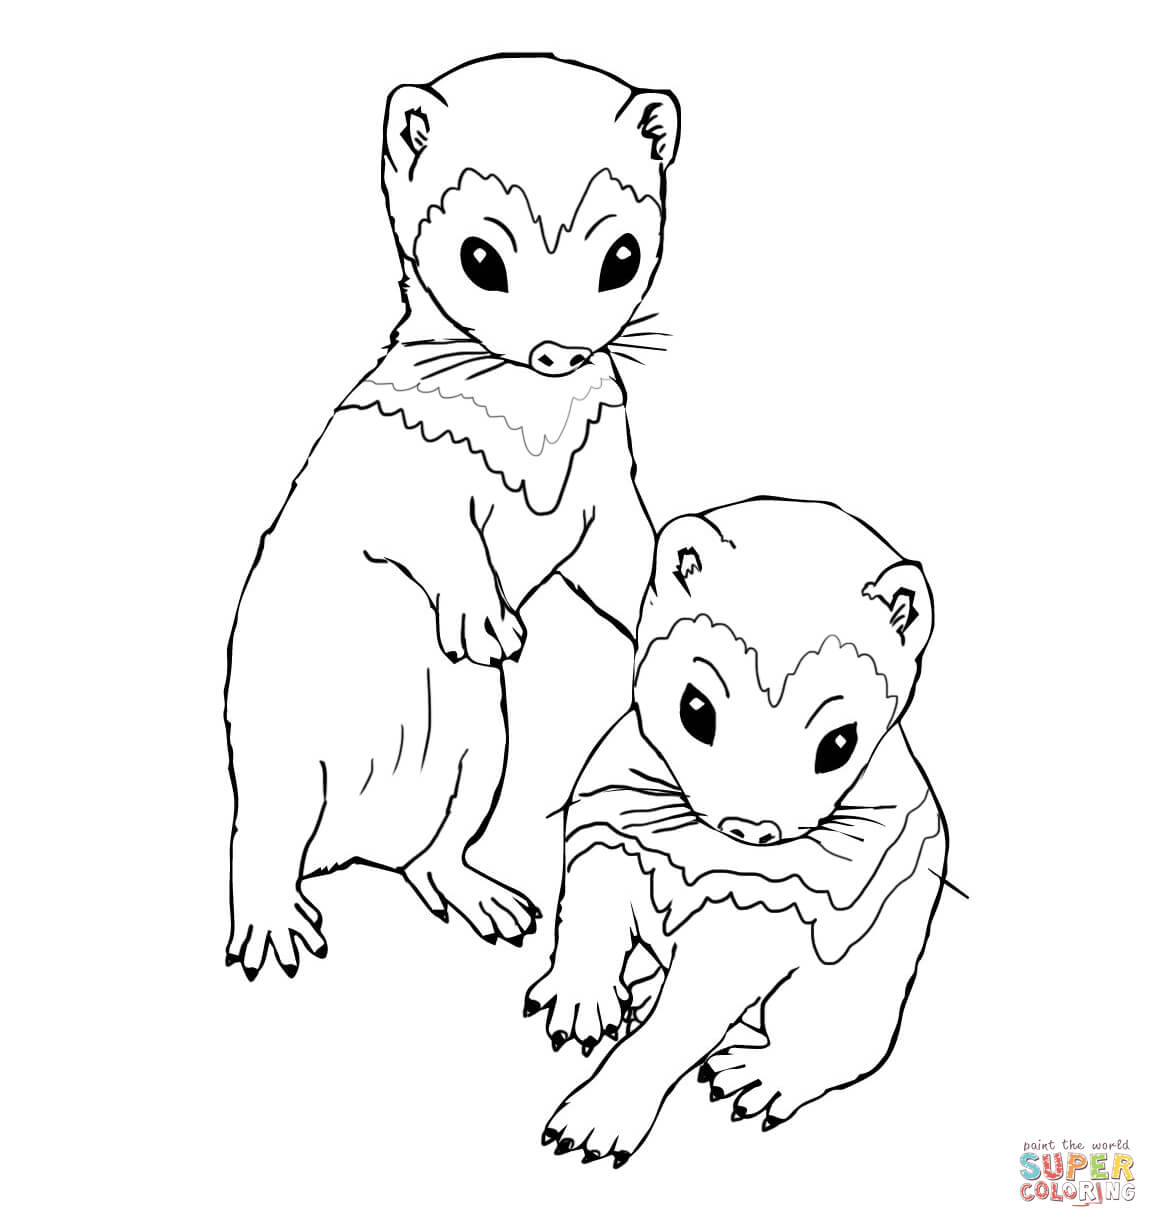 ferret coloring pages ferret coloring pages to print food ideas coloring pages ferret